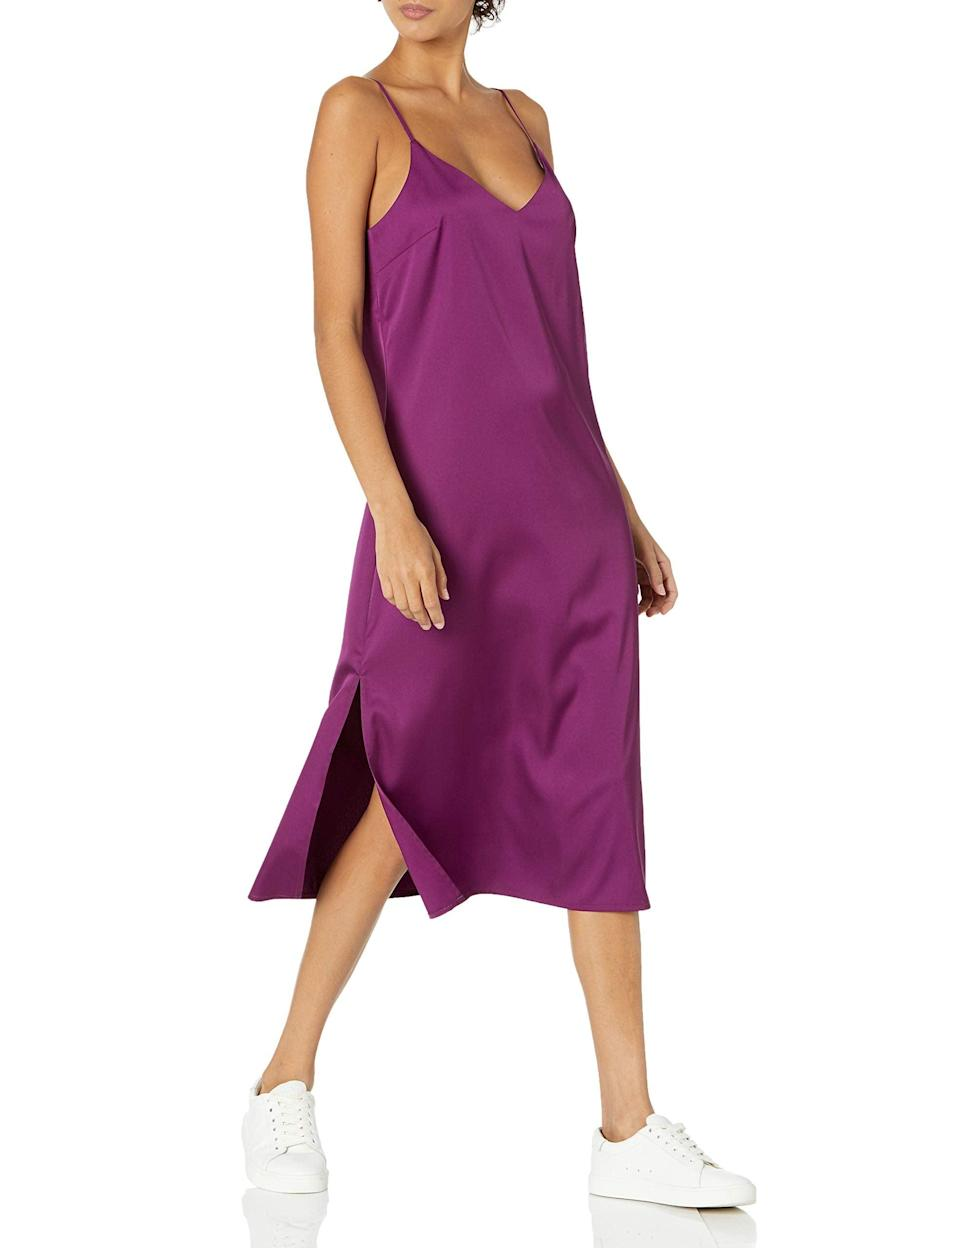 """<br><br><strong>The Drop</strong> Ana Silky V-Neck Midi Slip Dress, $, available at <a href=""""https://amzn.to/3wuJvj6"""" rel=""""nofollow noopener"""" target=""""_blank"""" data-ylk=""""slk:Amazon"""" class=""""link rapid-noclick-resp"""">Amazon</a>"""